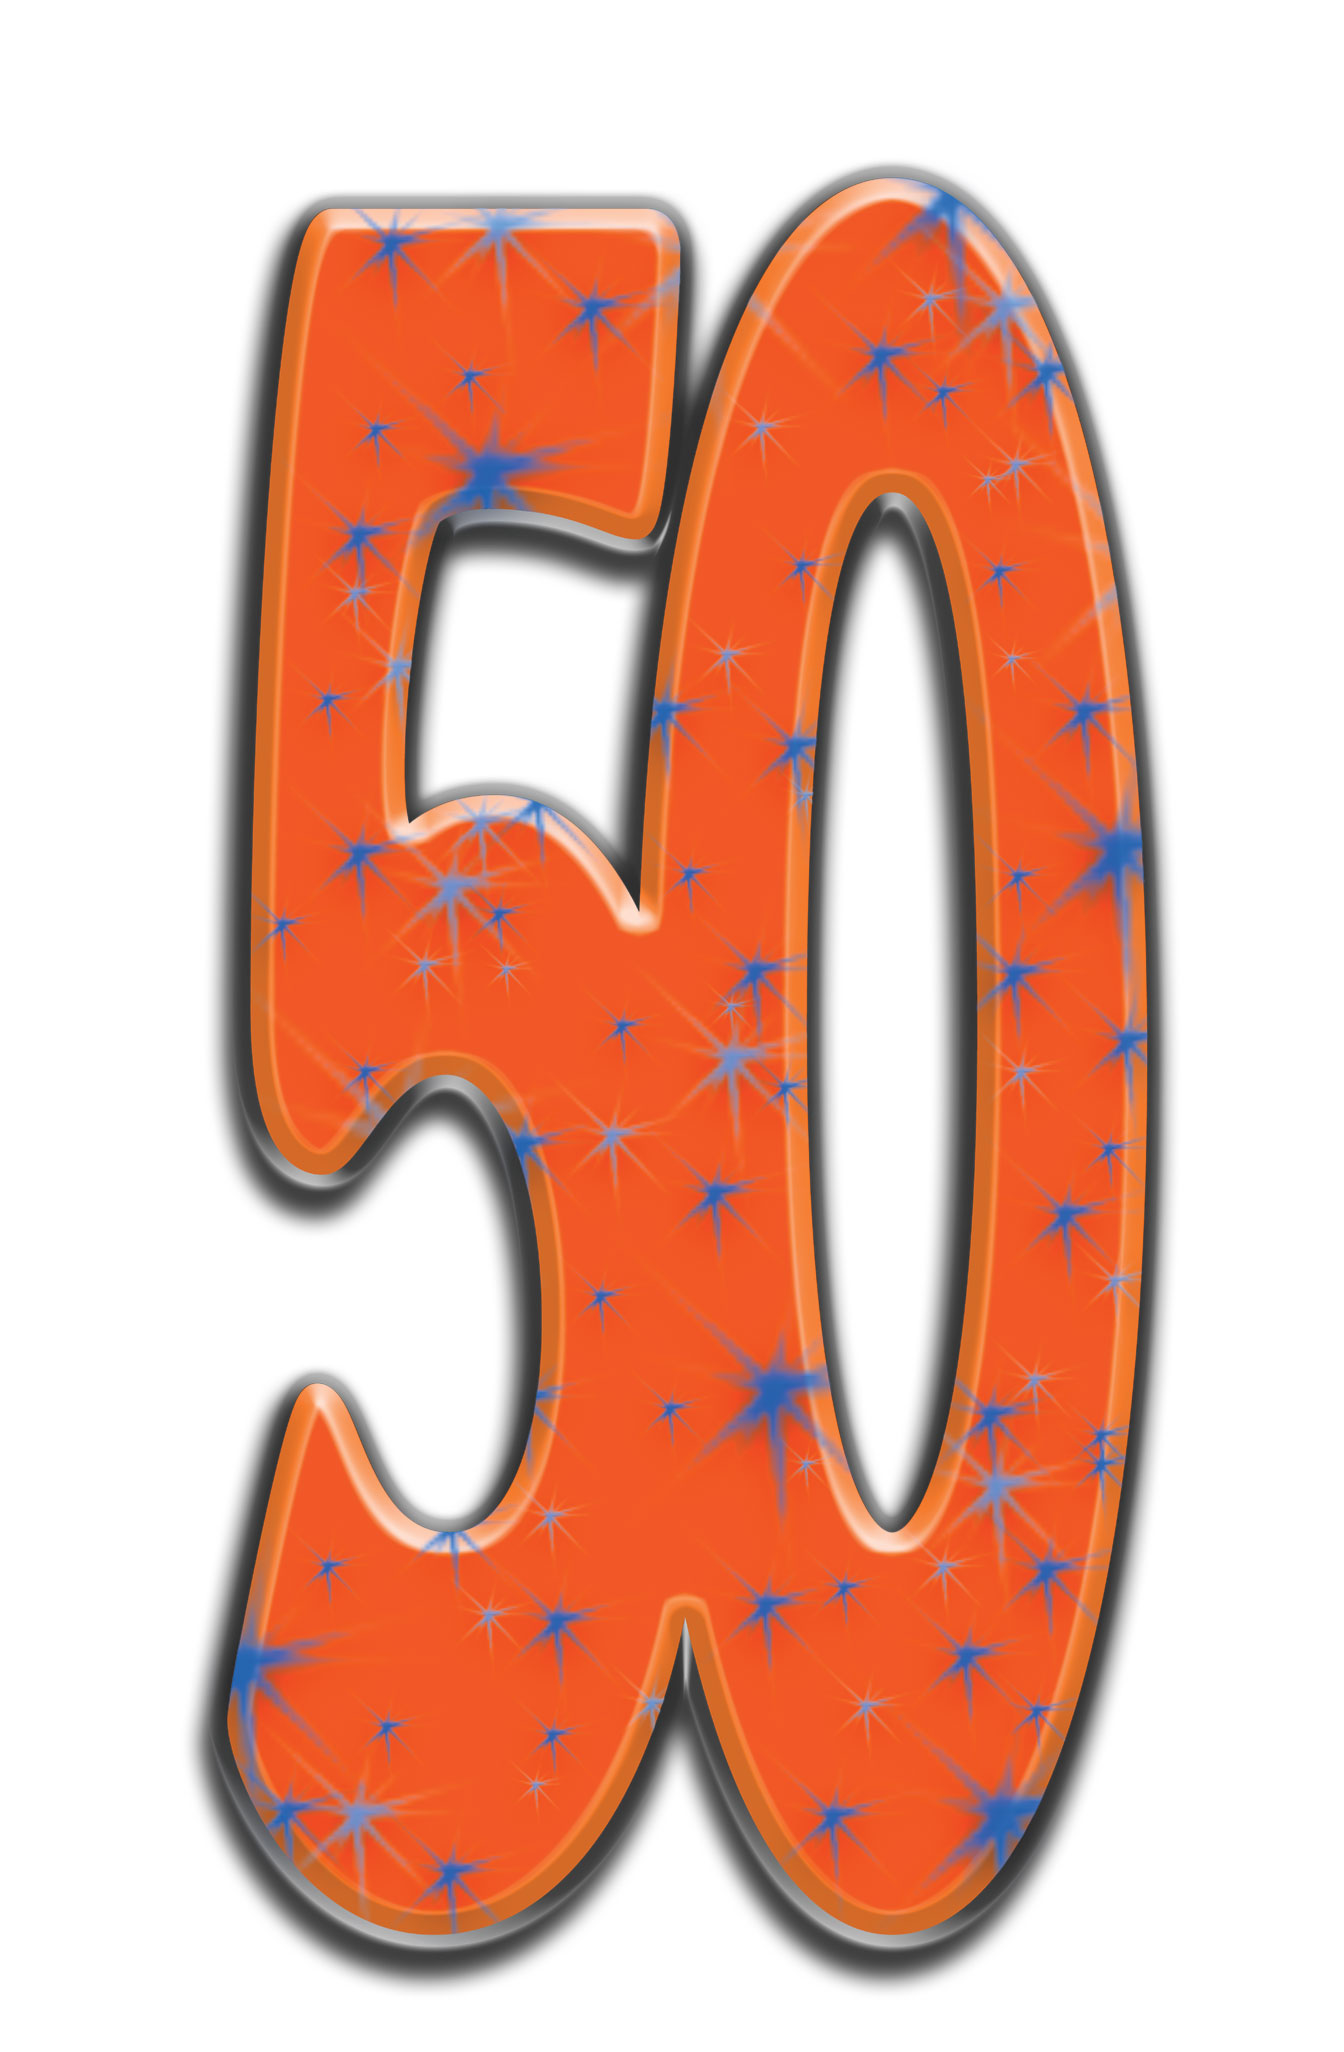 Number 50 clipart images.